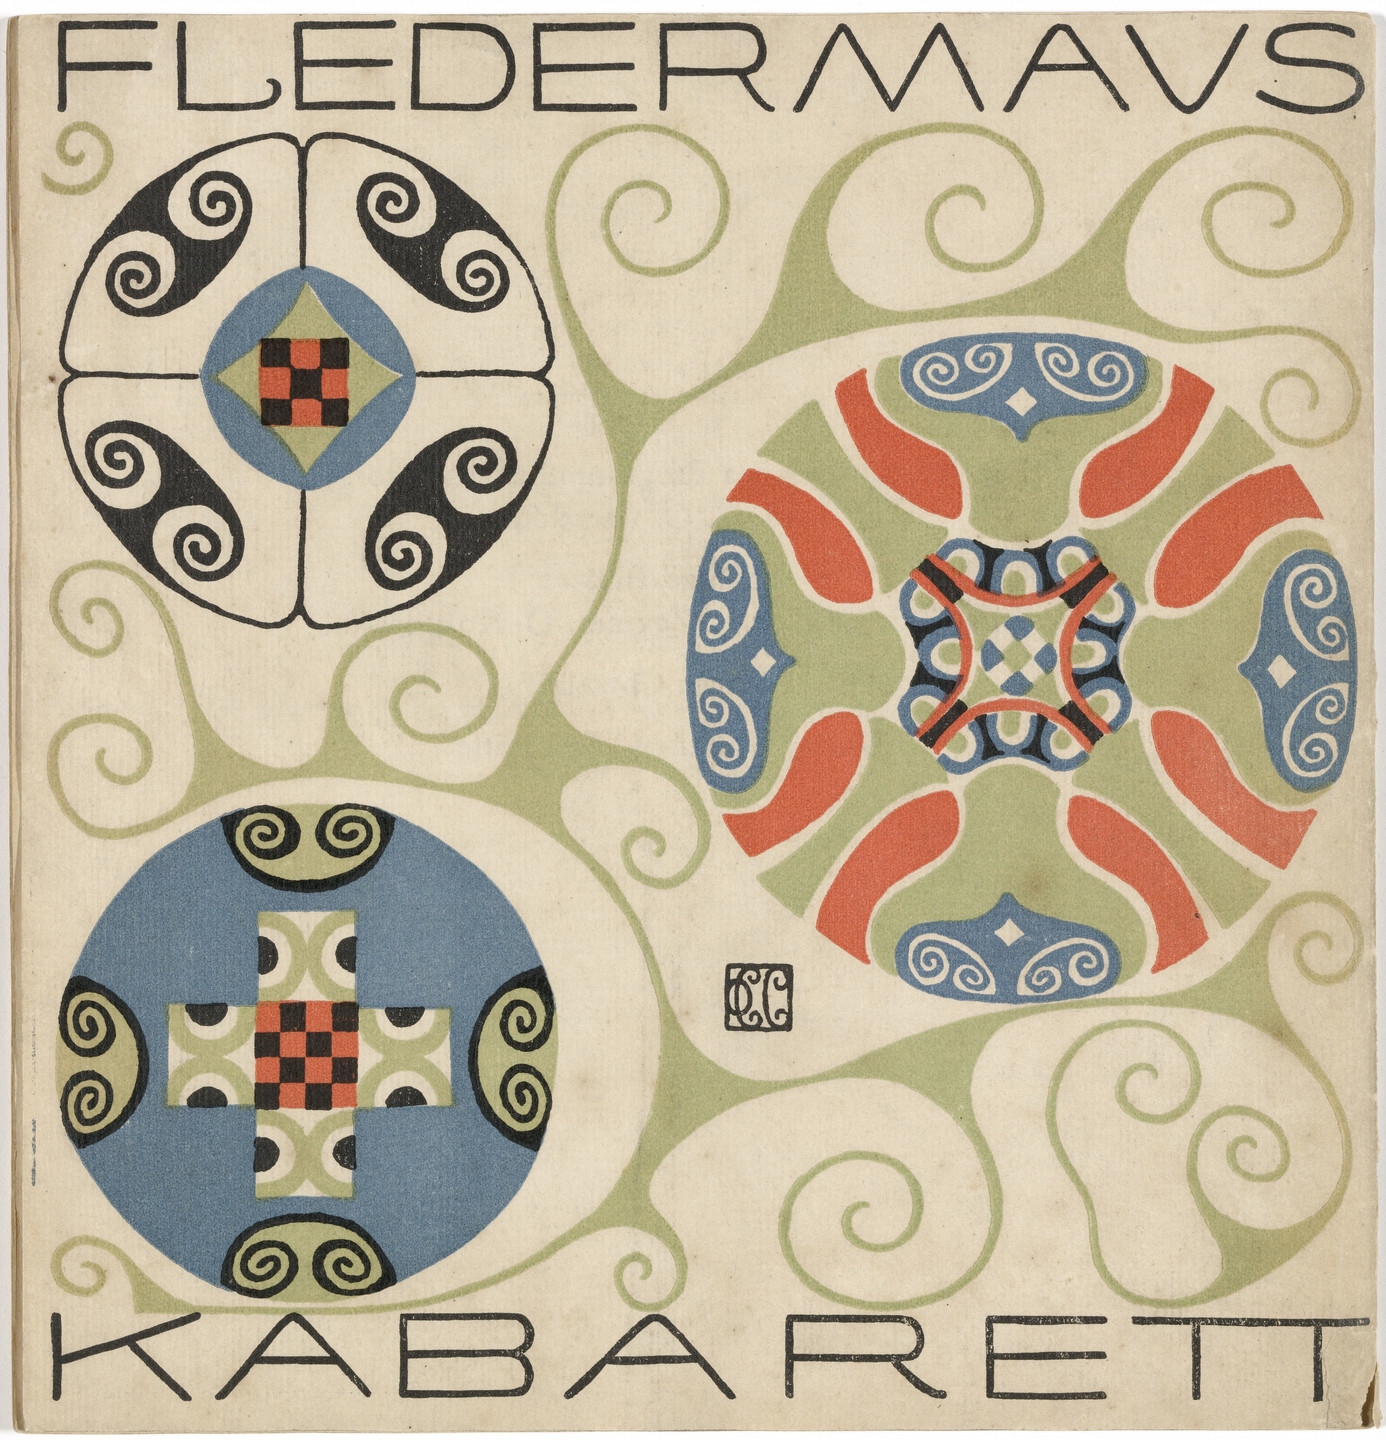 Carl Otto Czeschka. Back cover from the First Theater Program of Kabarett Fledermaus (Cabaret Fledermaus). 1907